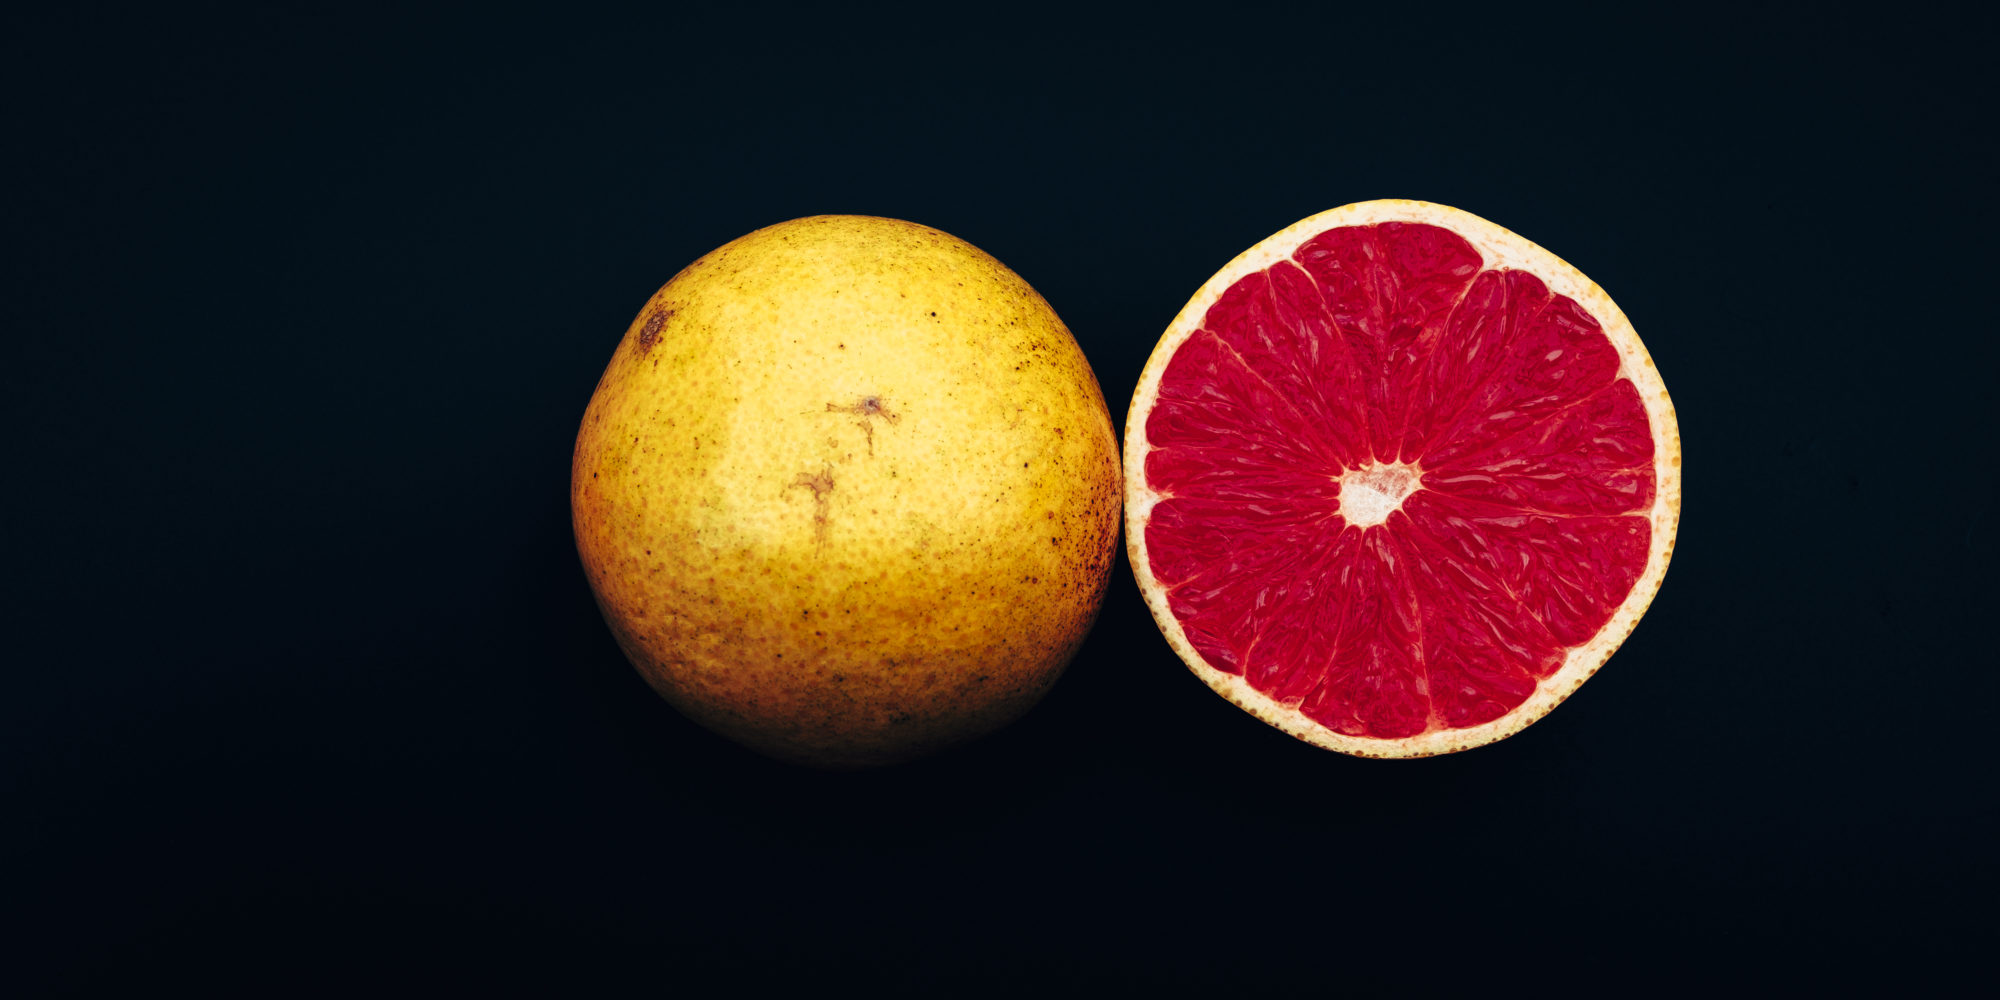 Fresh Grapefruit cut in half on a black background, Dinner in the Dark Motive